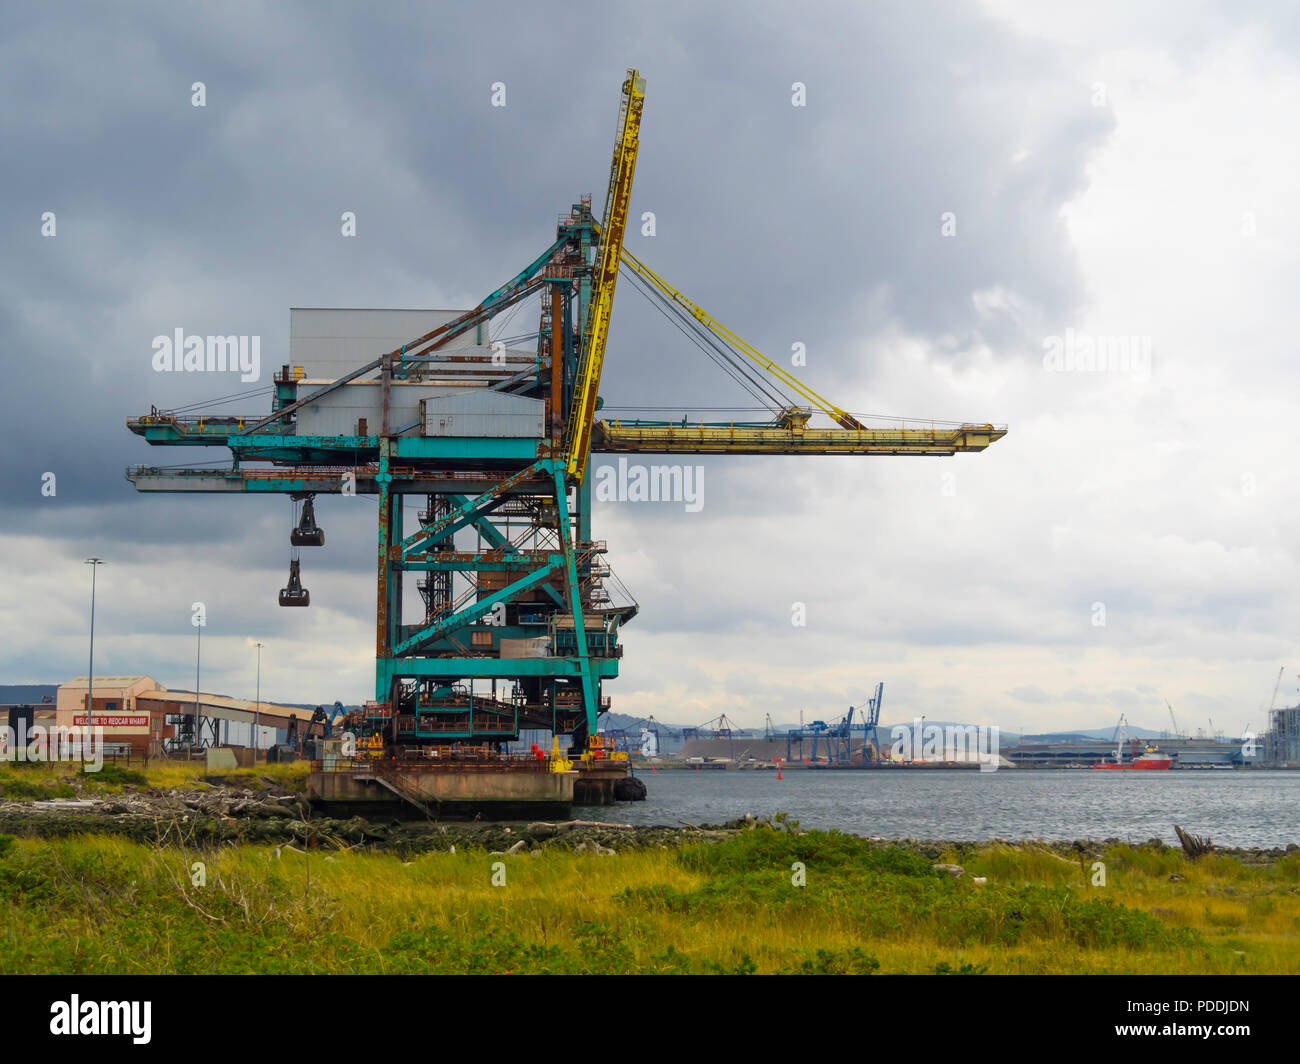 Redcar Bulk Terminal  with a deep water berth on the River Tees and grab cranes for unloading dry cargo from large bulk carrier ships. Stock Photo